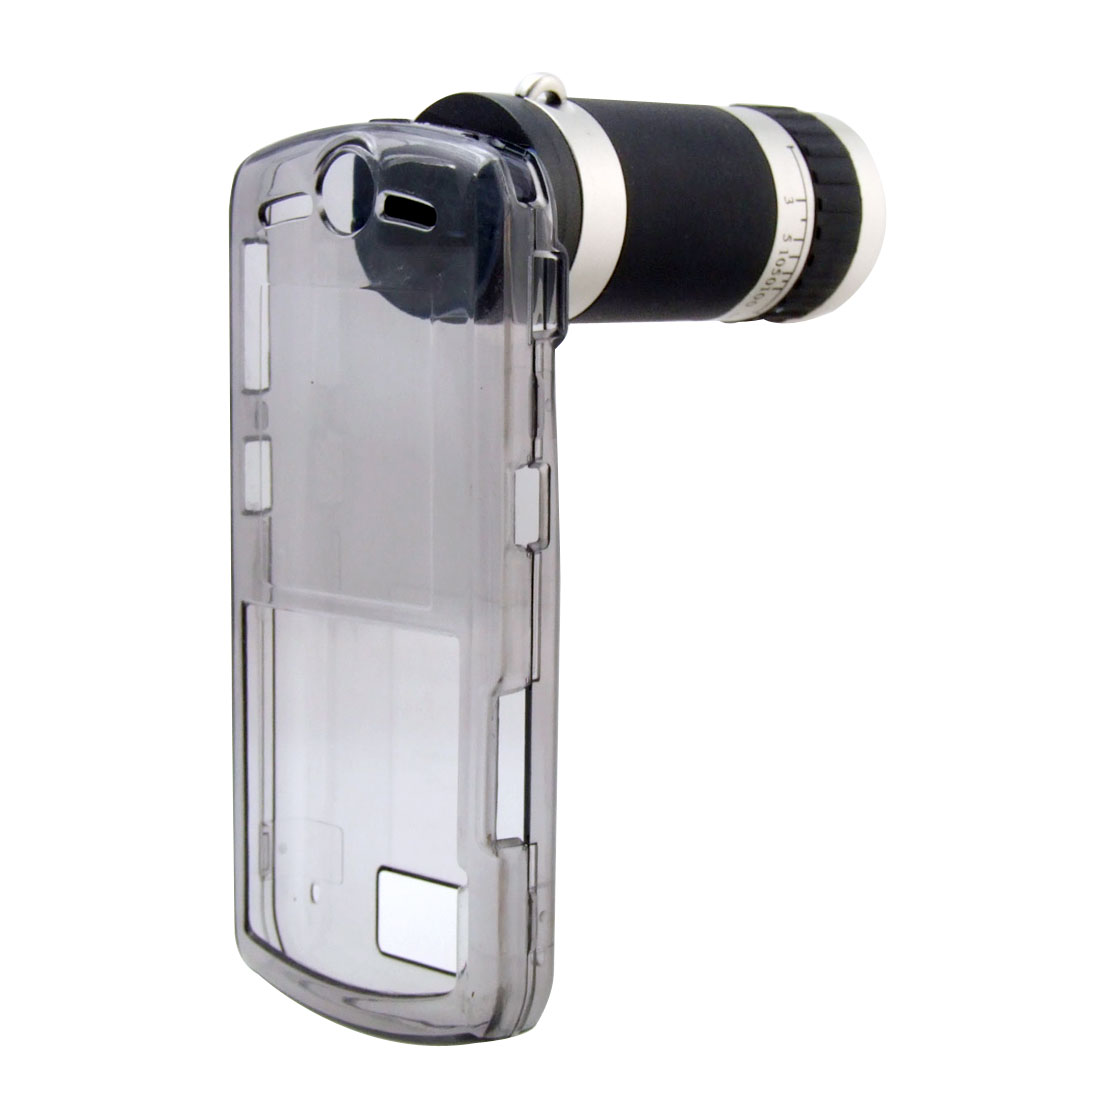 Telescope w/ Mobile Phone Motorola L7 Anti-abrasion Cover Case Kit